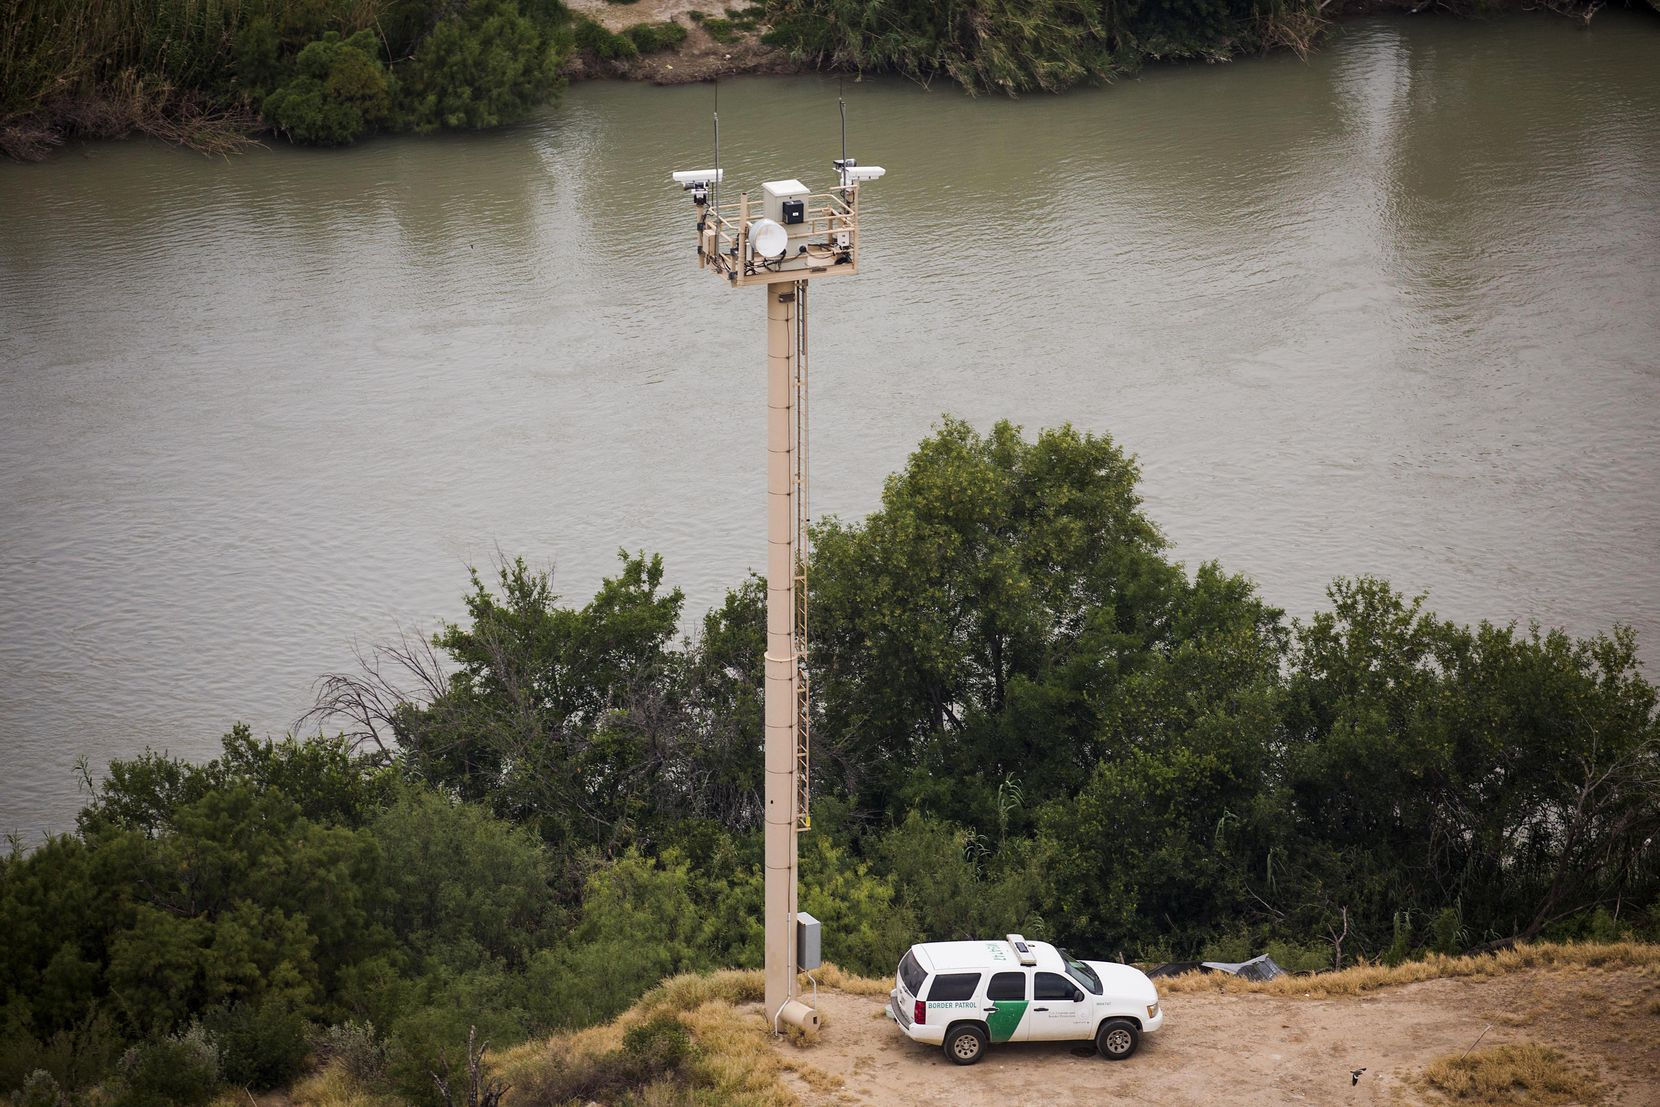 A U.S. Customs and Border Protection officer watches from a vehicle at the base of a camera tower on the banks of the Rio Grande River on May 10, 2017, near Rio Bravo, Texas, a few miles north of El Cenizo.